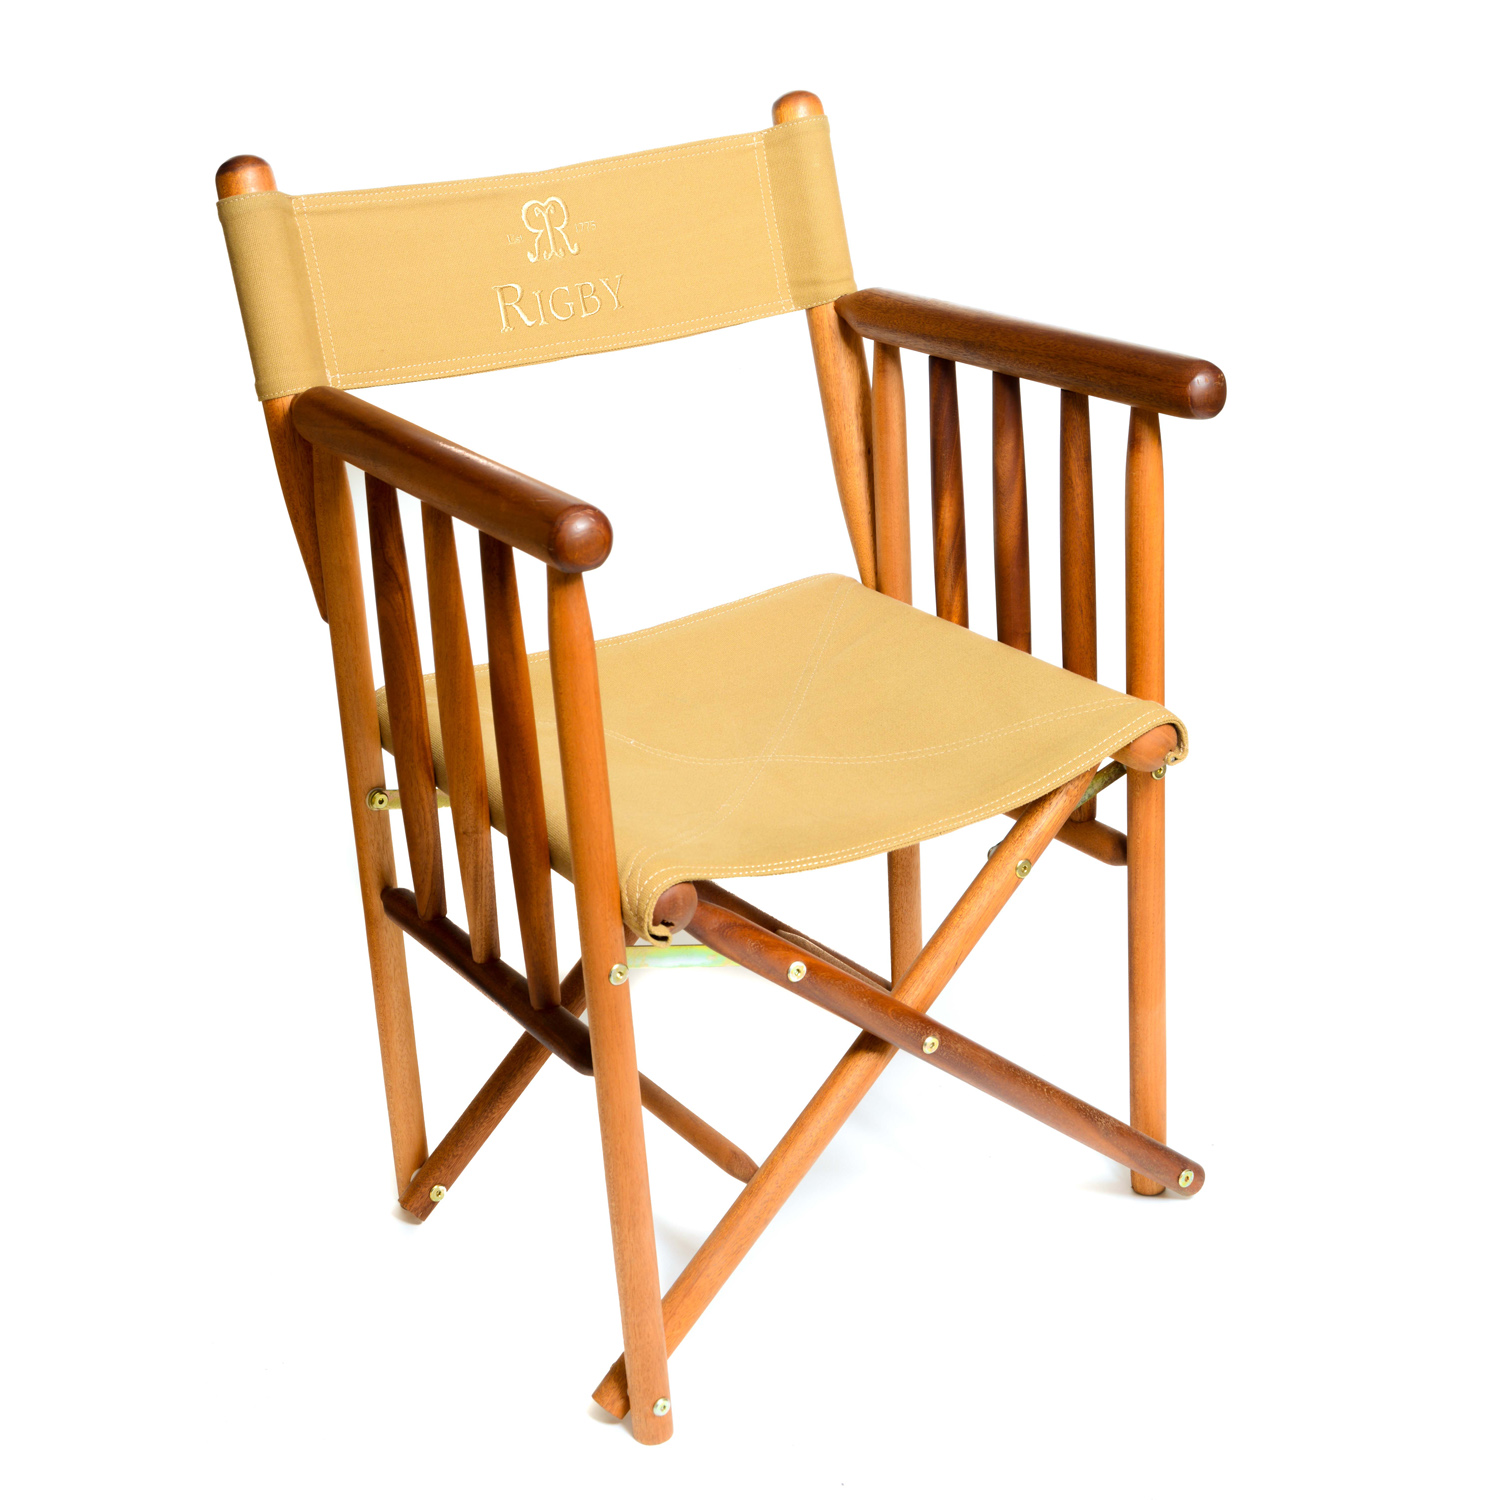 Safari Chair Rigby Safari Chair John Rigby And Co